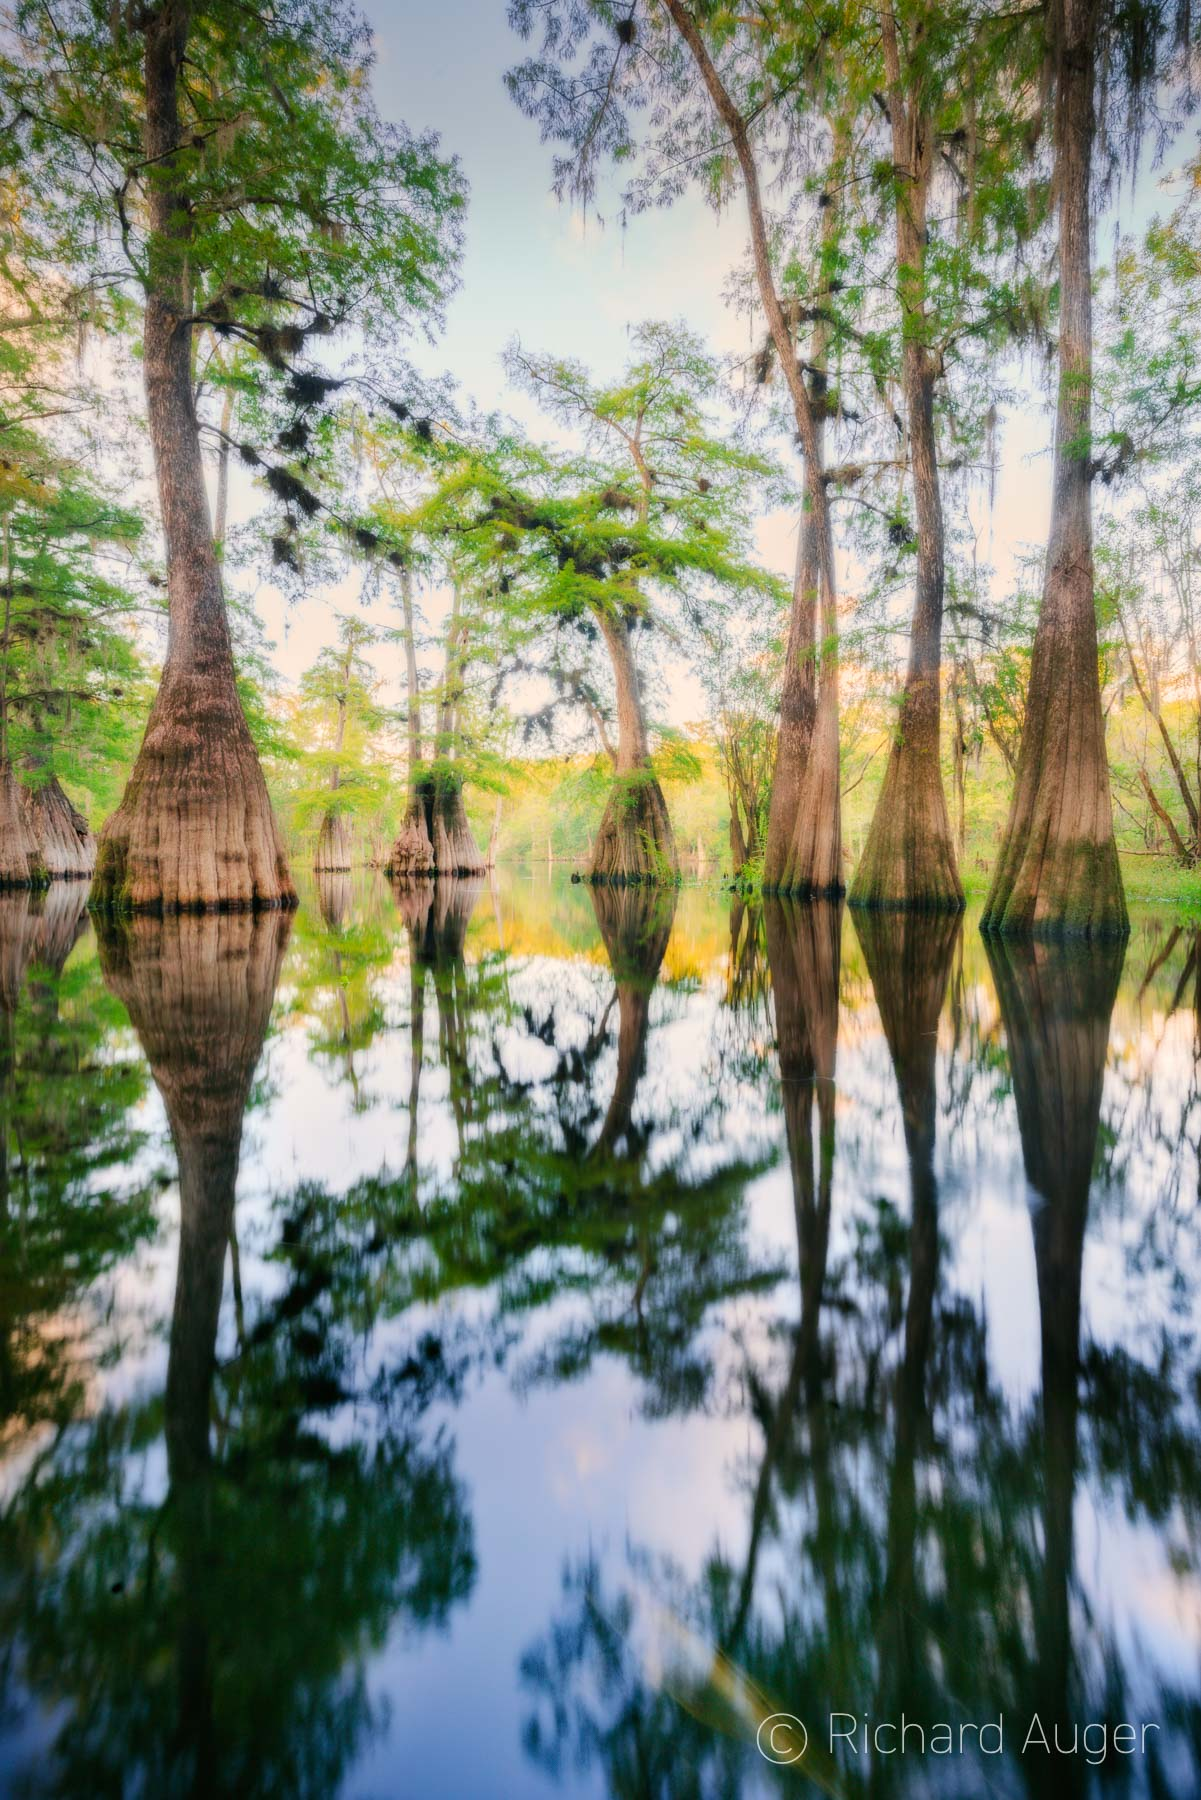 Santa Fe River, Suwannee River, Cypress, Florida, Evening, water, photographer, richard auger, nature, landscape